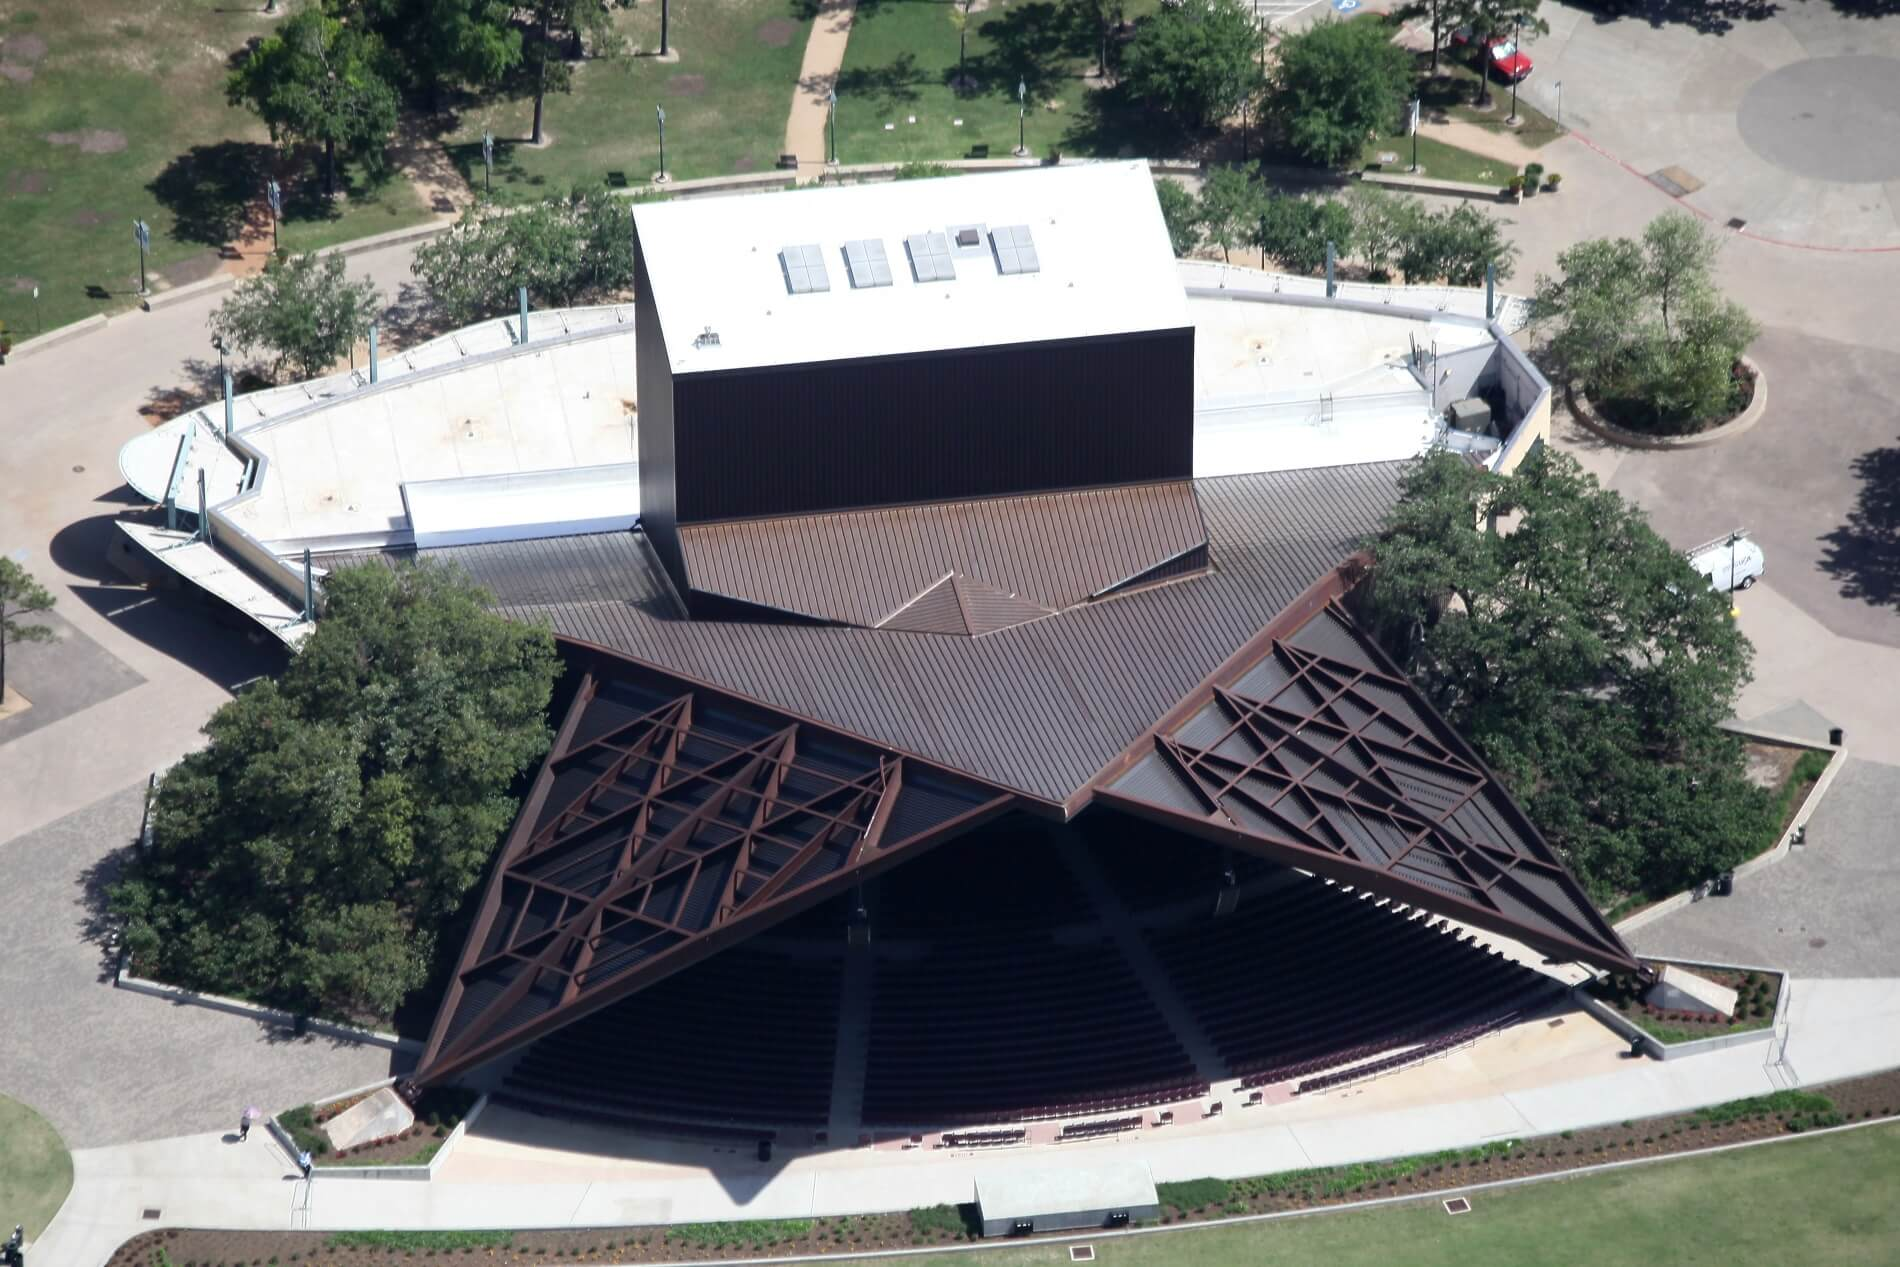 Onsite panel machine aids theater roof completion on deadline